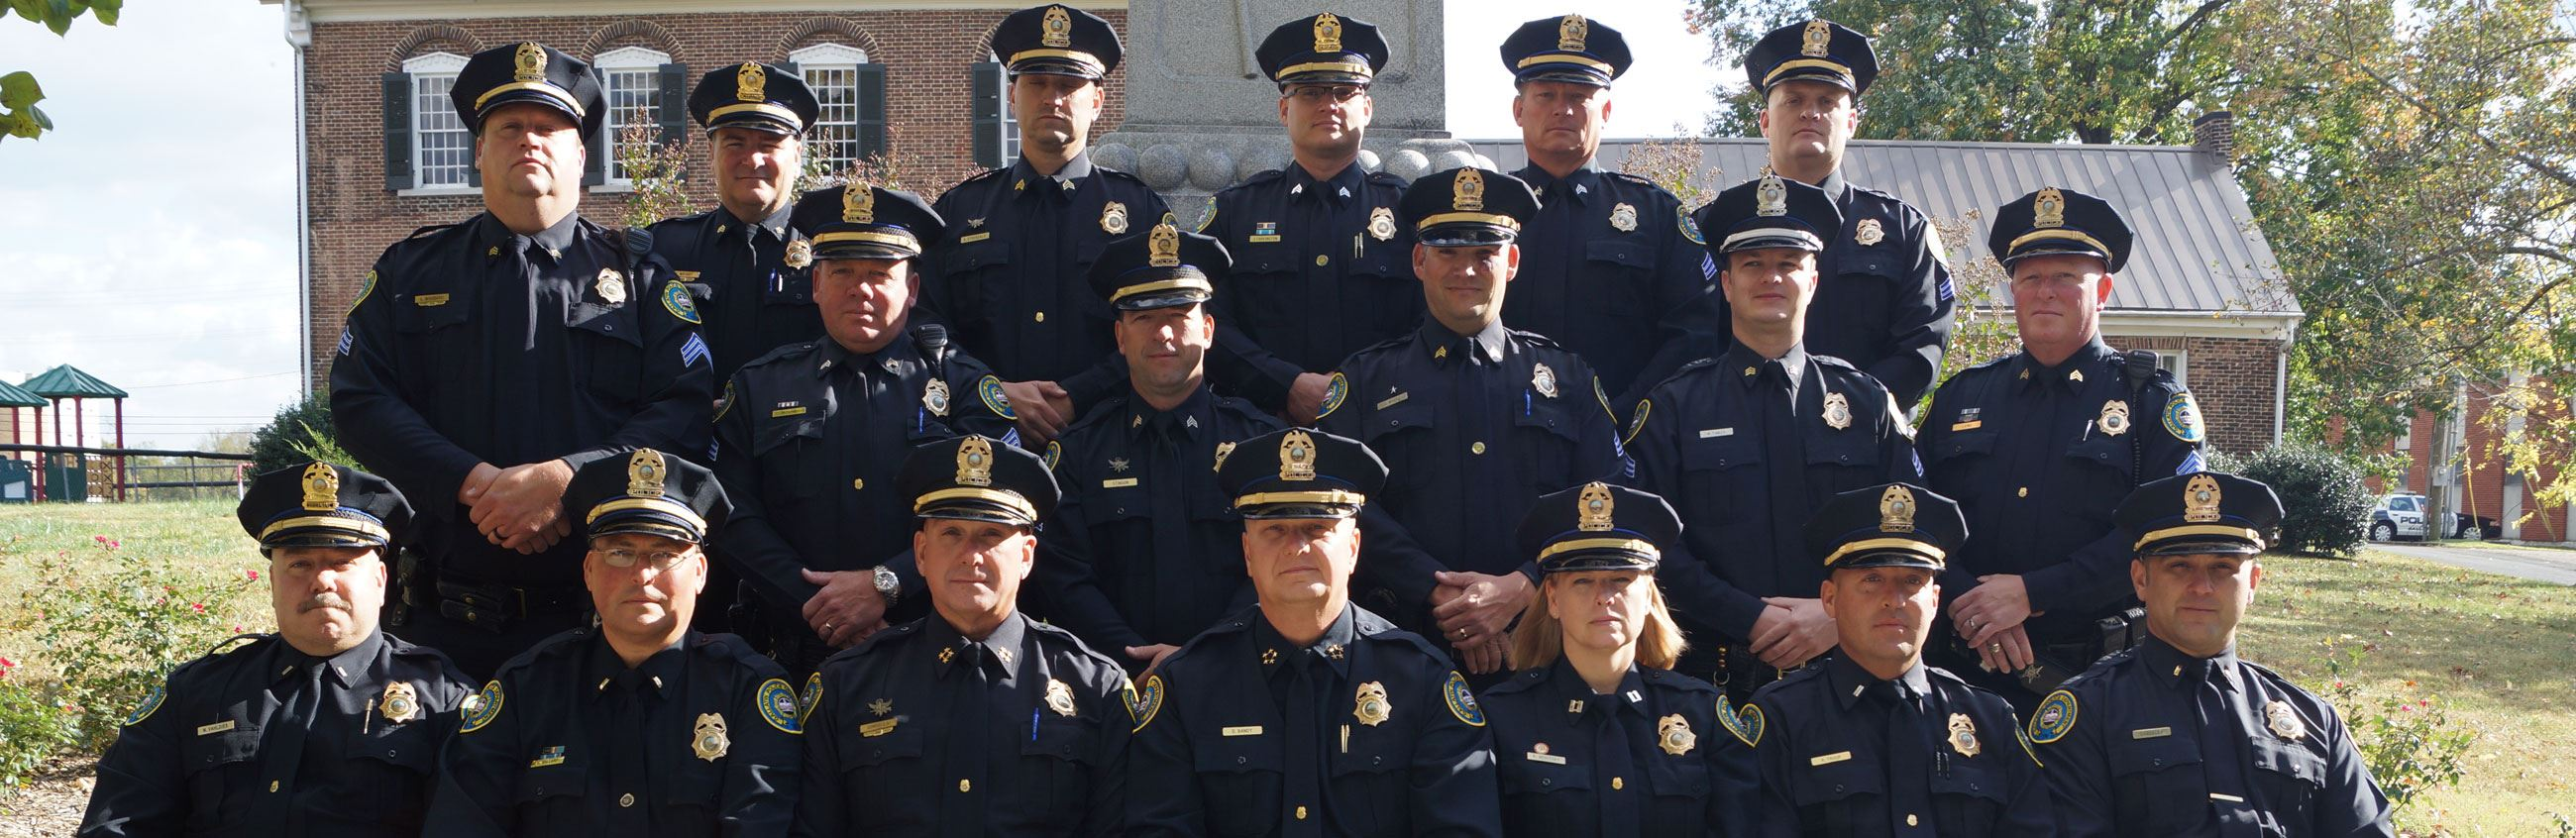 Group Picture of GPD Officers